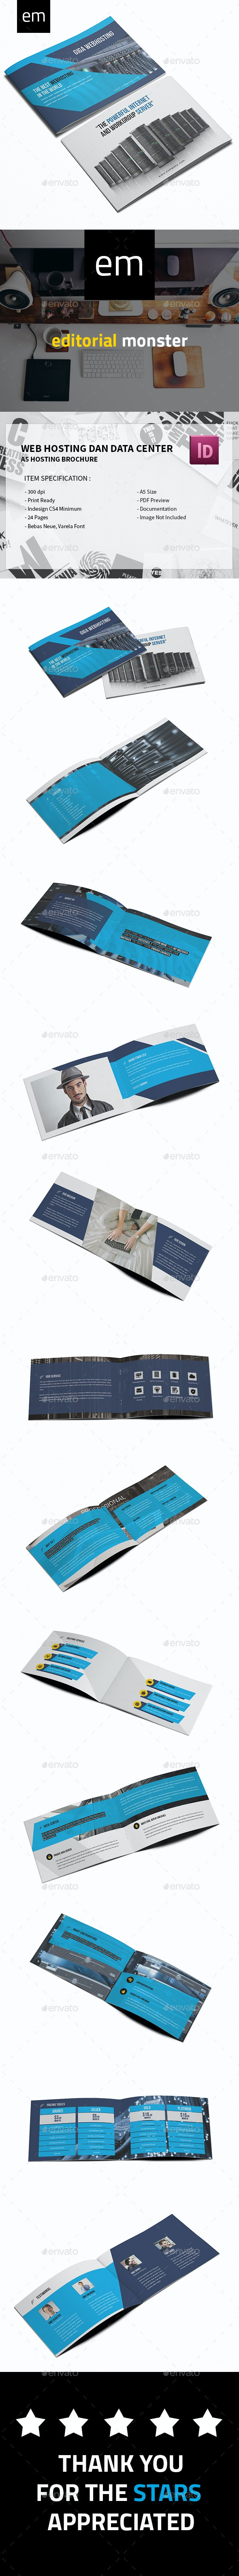 Web Hosting and Data Center Brochure A5 - Corporate Brochures